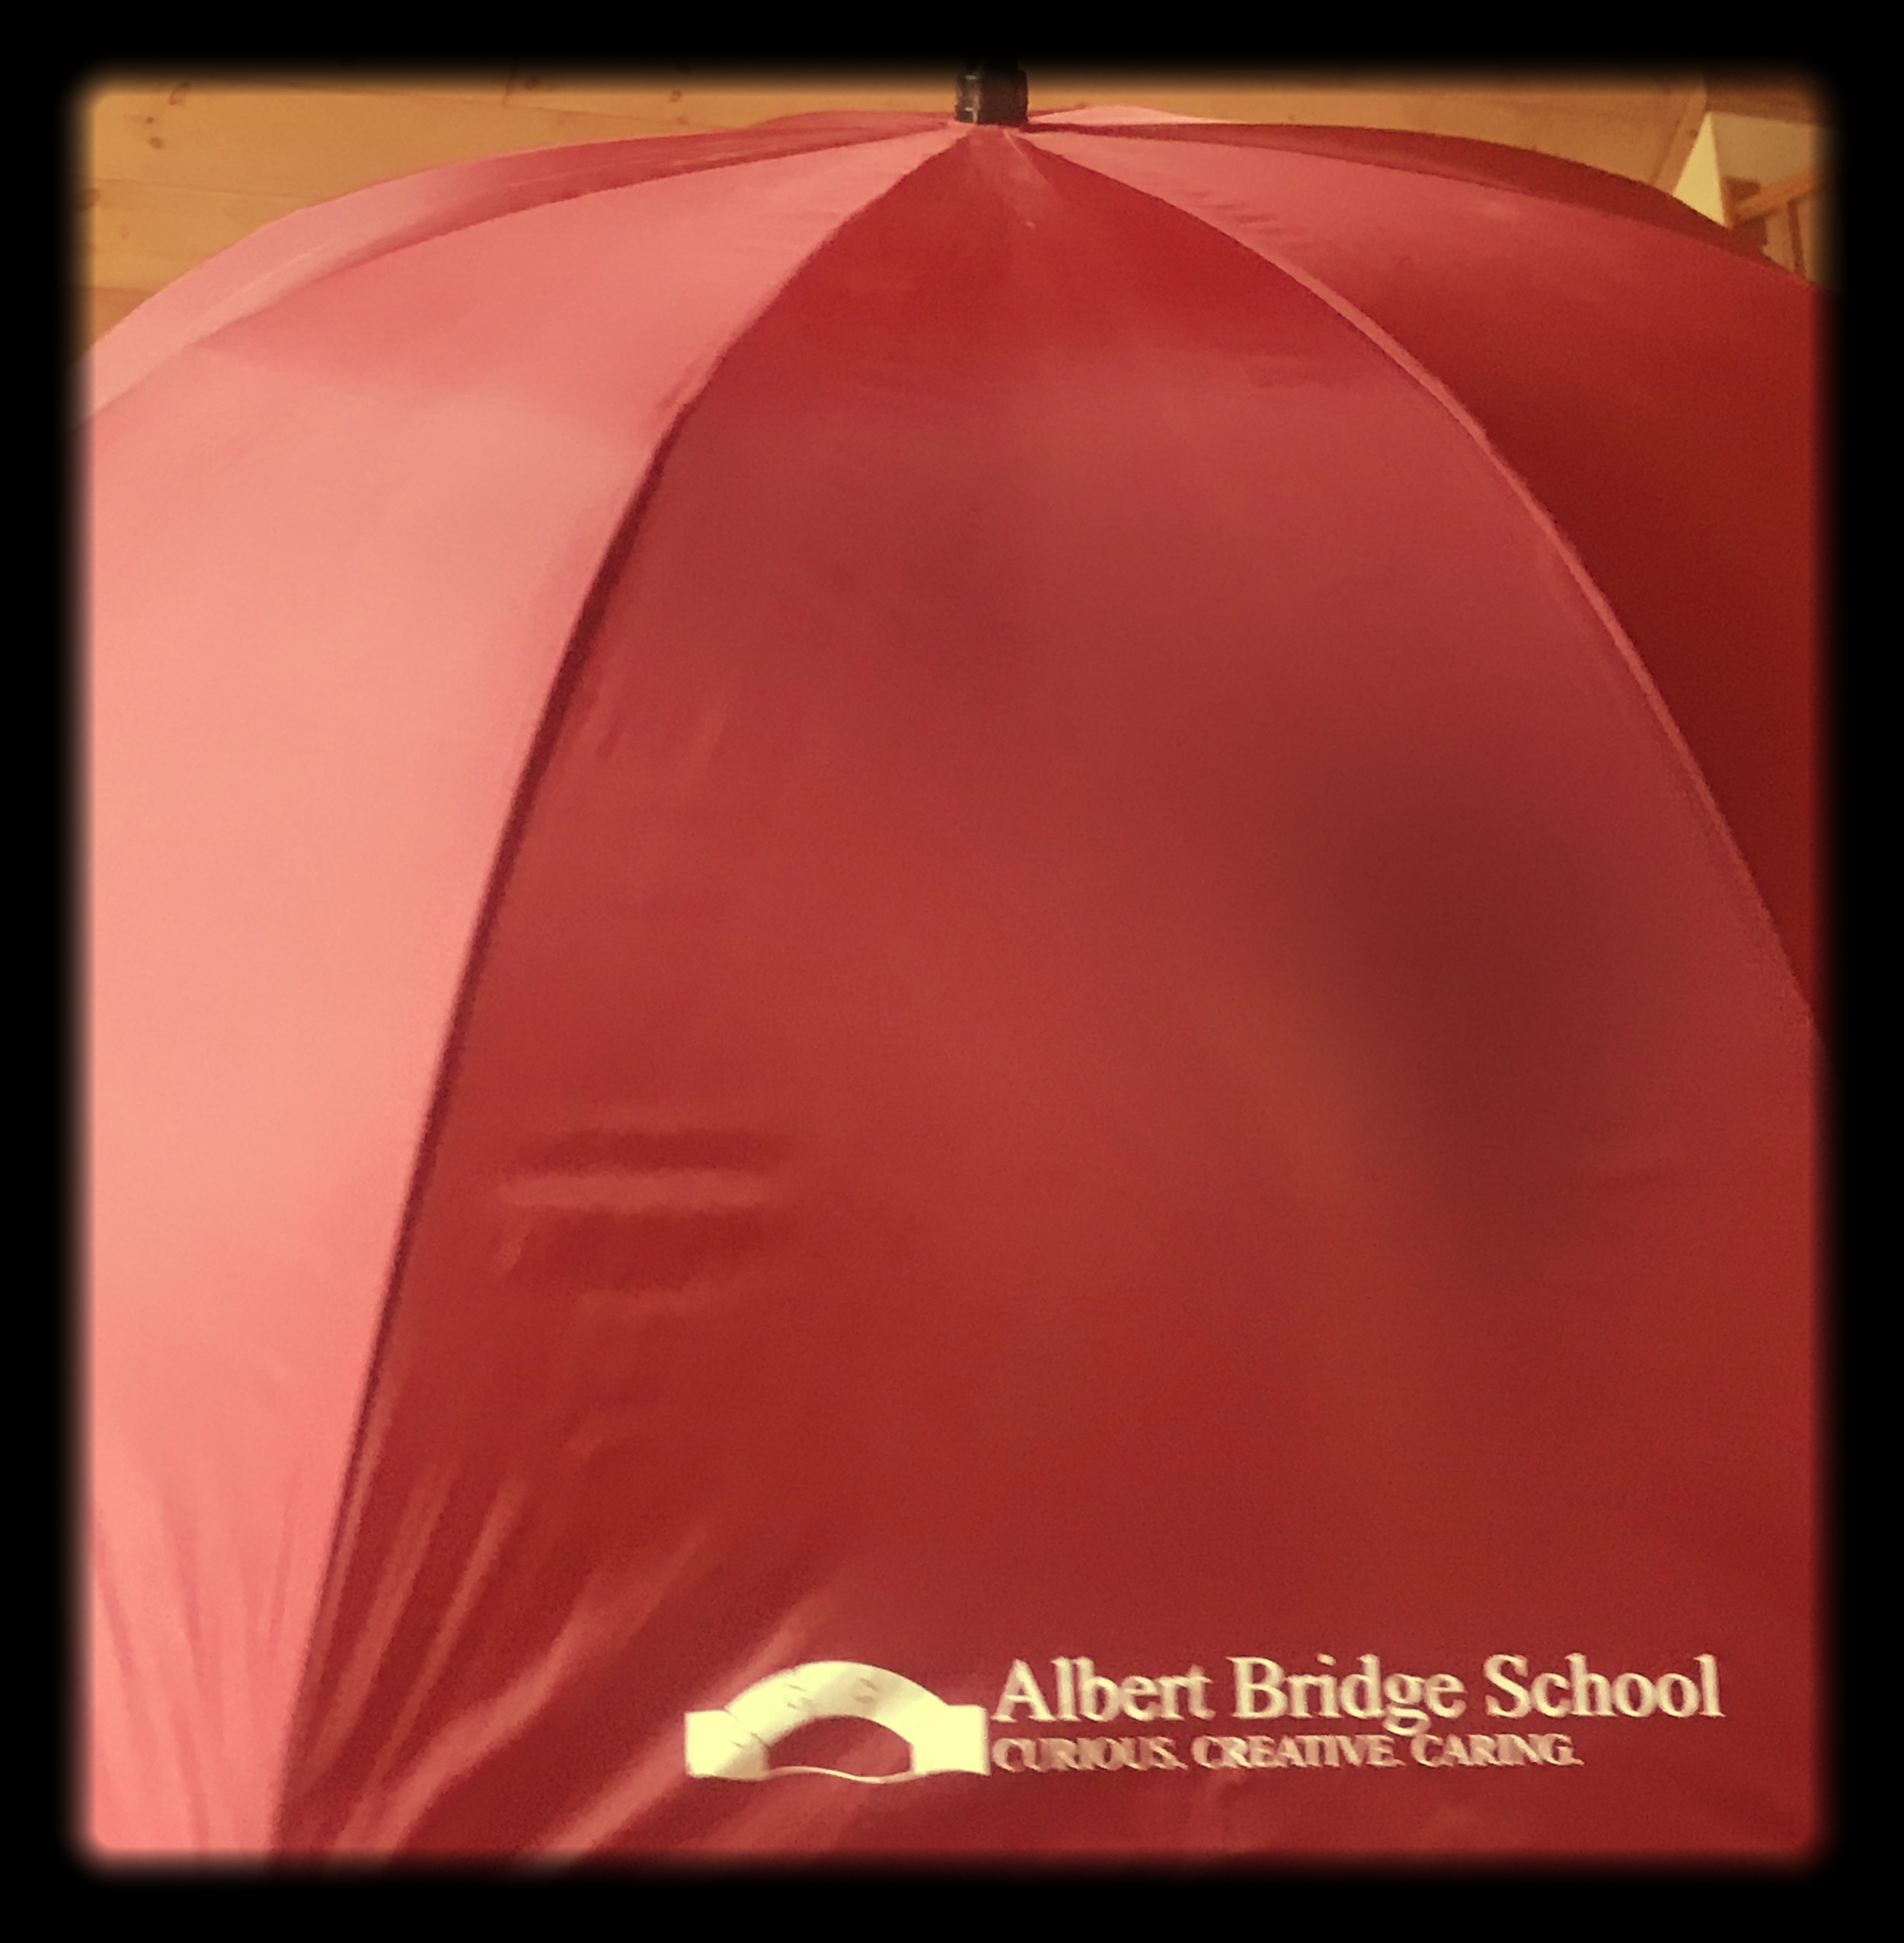 "Under the umbrella of Ascutney Winds,  SCIP , and  Albert Bridge School , Brownsville welcomes the return of the  Umbrella Concert Series . In 2018, two concerts are on offer for  Brownsville : the  New England Brass Band  on July 3rd, and  Amherst Jazz Orchestra  on August 18th.   These concerts are part of a continuing series put on by Ascutney Winds, a non-profit that brings professional musicians to the communities surrounding  Mt. Ascutney . Later in the summer, on August 18th, return to Brownsville for a ""Kick Off Your Shoes and Dance"" concert, featuring the big band sounds of the  Amherst Jazz Orchestra , which played in Brownsville last year to great result. This year, the ensemble returns to Brownsville with a dance set; a special dance floor will be part of the setup for anyone who finds his or her body already swaying to the sounds. Pack a picnic and blanket or chair, bring your family, and kick off your shoes and dance! Concert begins at 4:30.   Umbrellas are for sale at all concerts! Big, beautiful, and all-encompassing, they yours for a $35 tax-free donation to Ascutney Winds. Concerts are free of admission charge; donations to keep the series running are gratefully accepted."